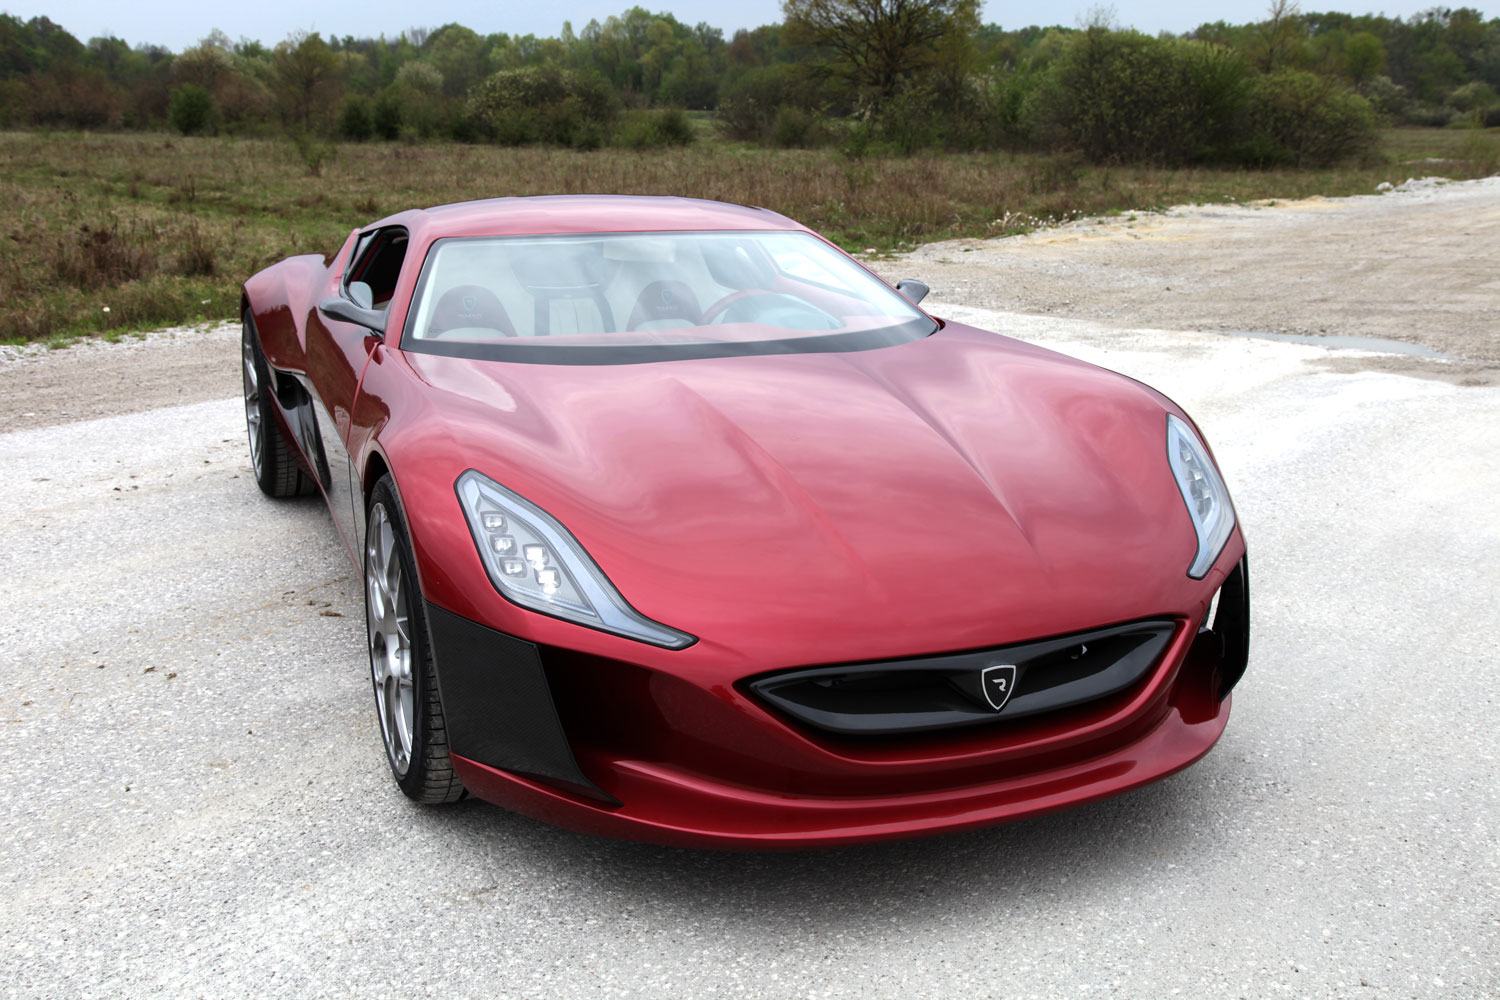 Technische Details Rimac Concept One [Video]